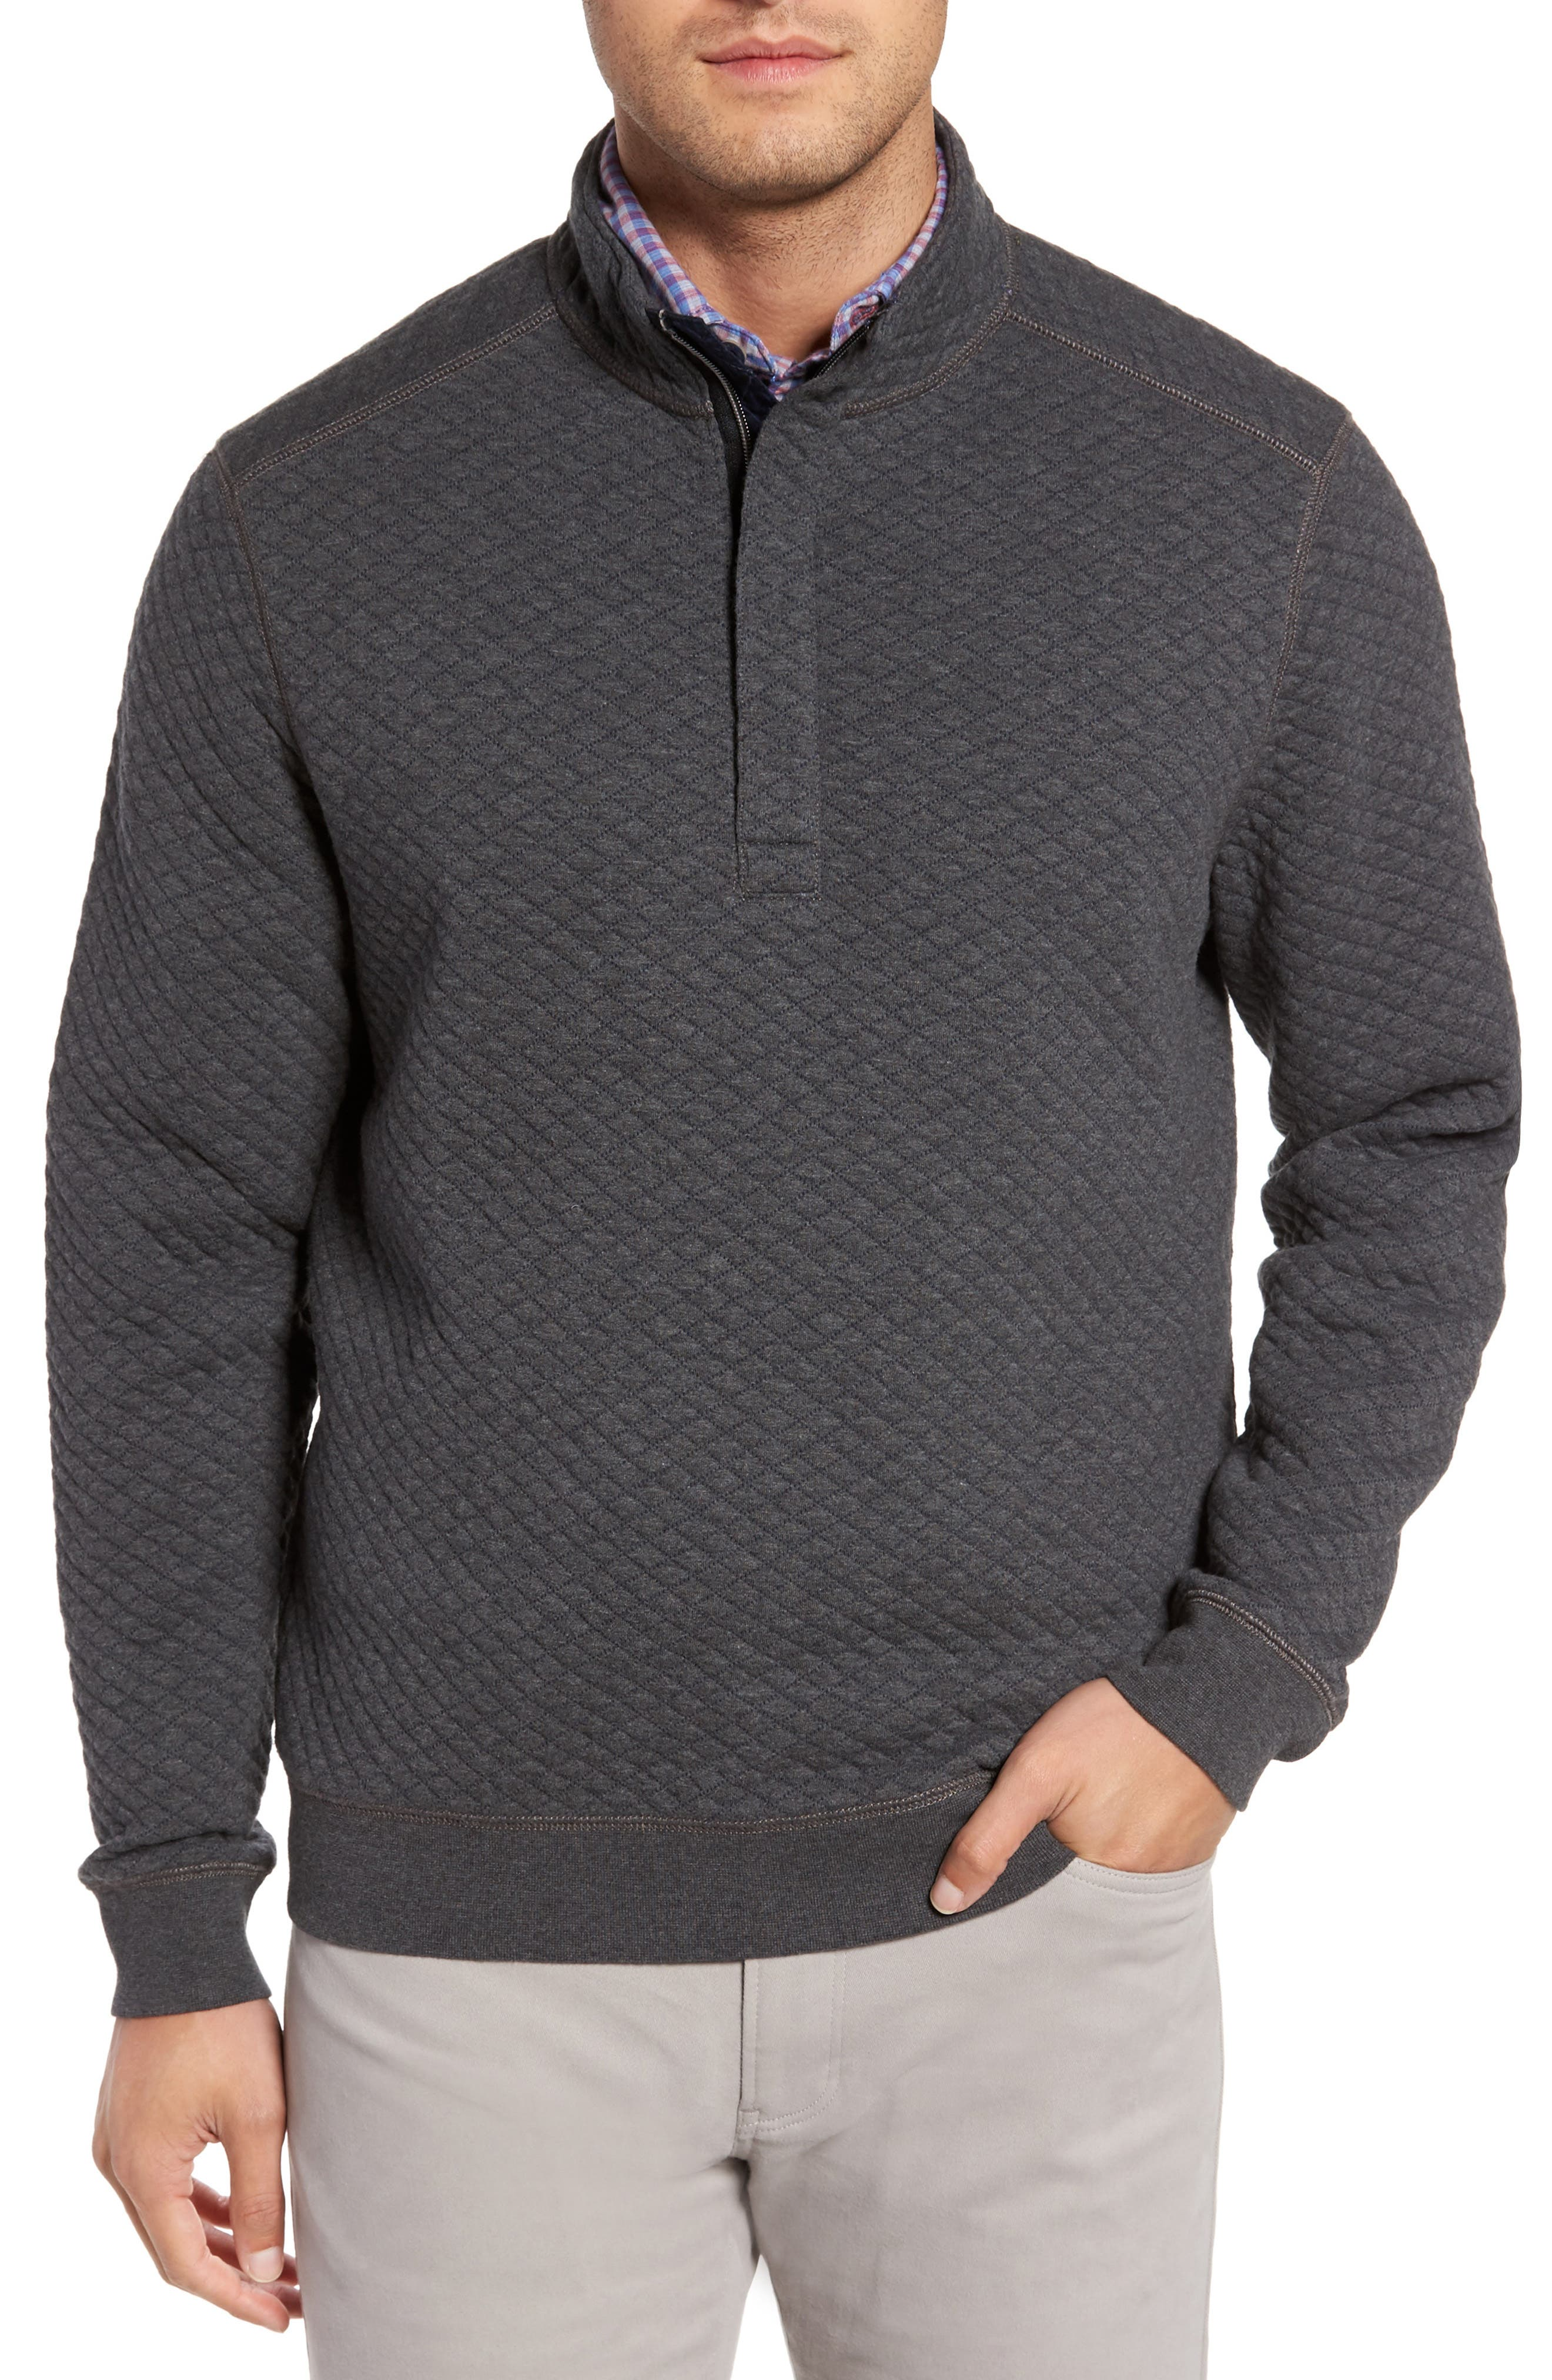 TOMMY BAHAMA Quiltessential Standard Fit Quarter Zip Pullover, Main, color, CHARCOAL HEATHER